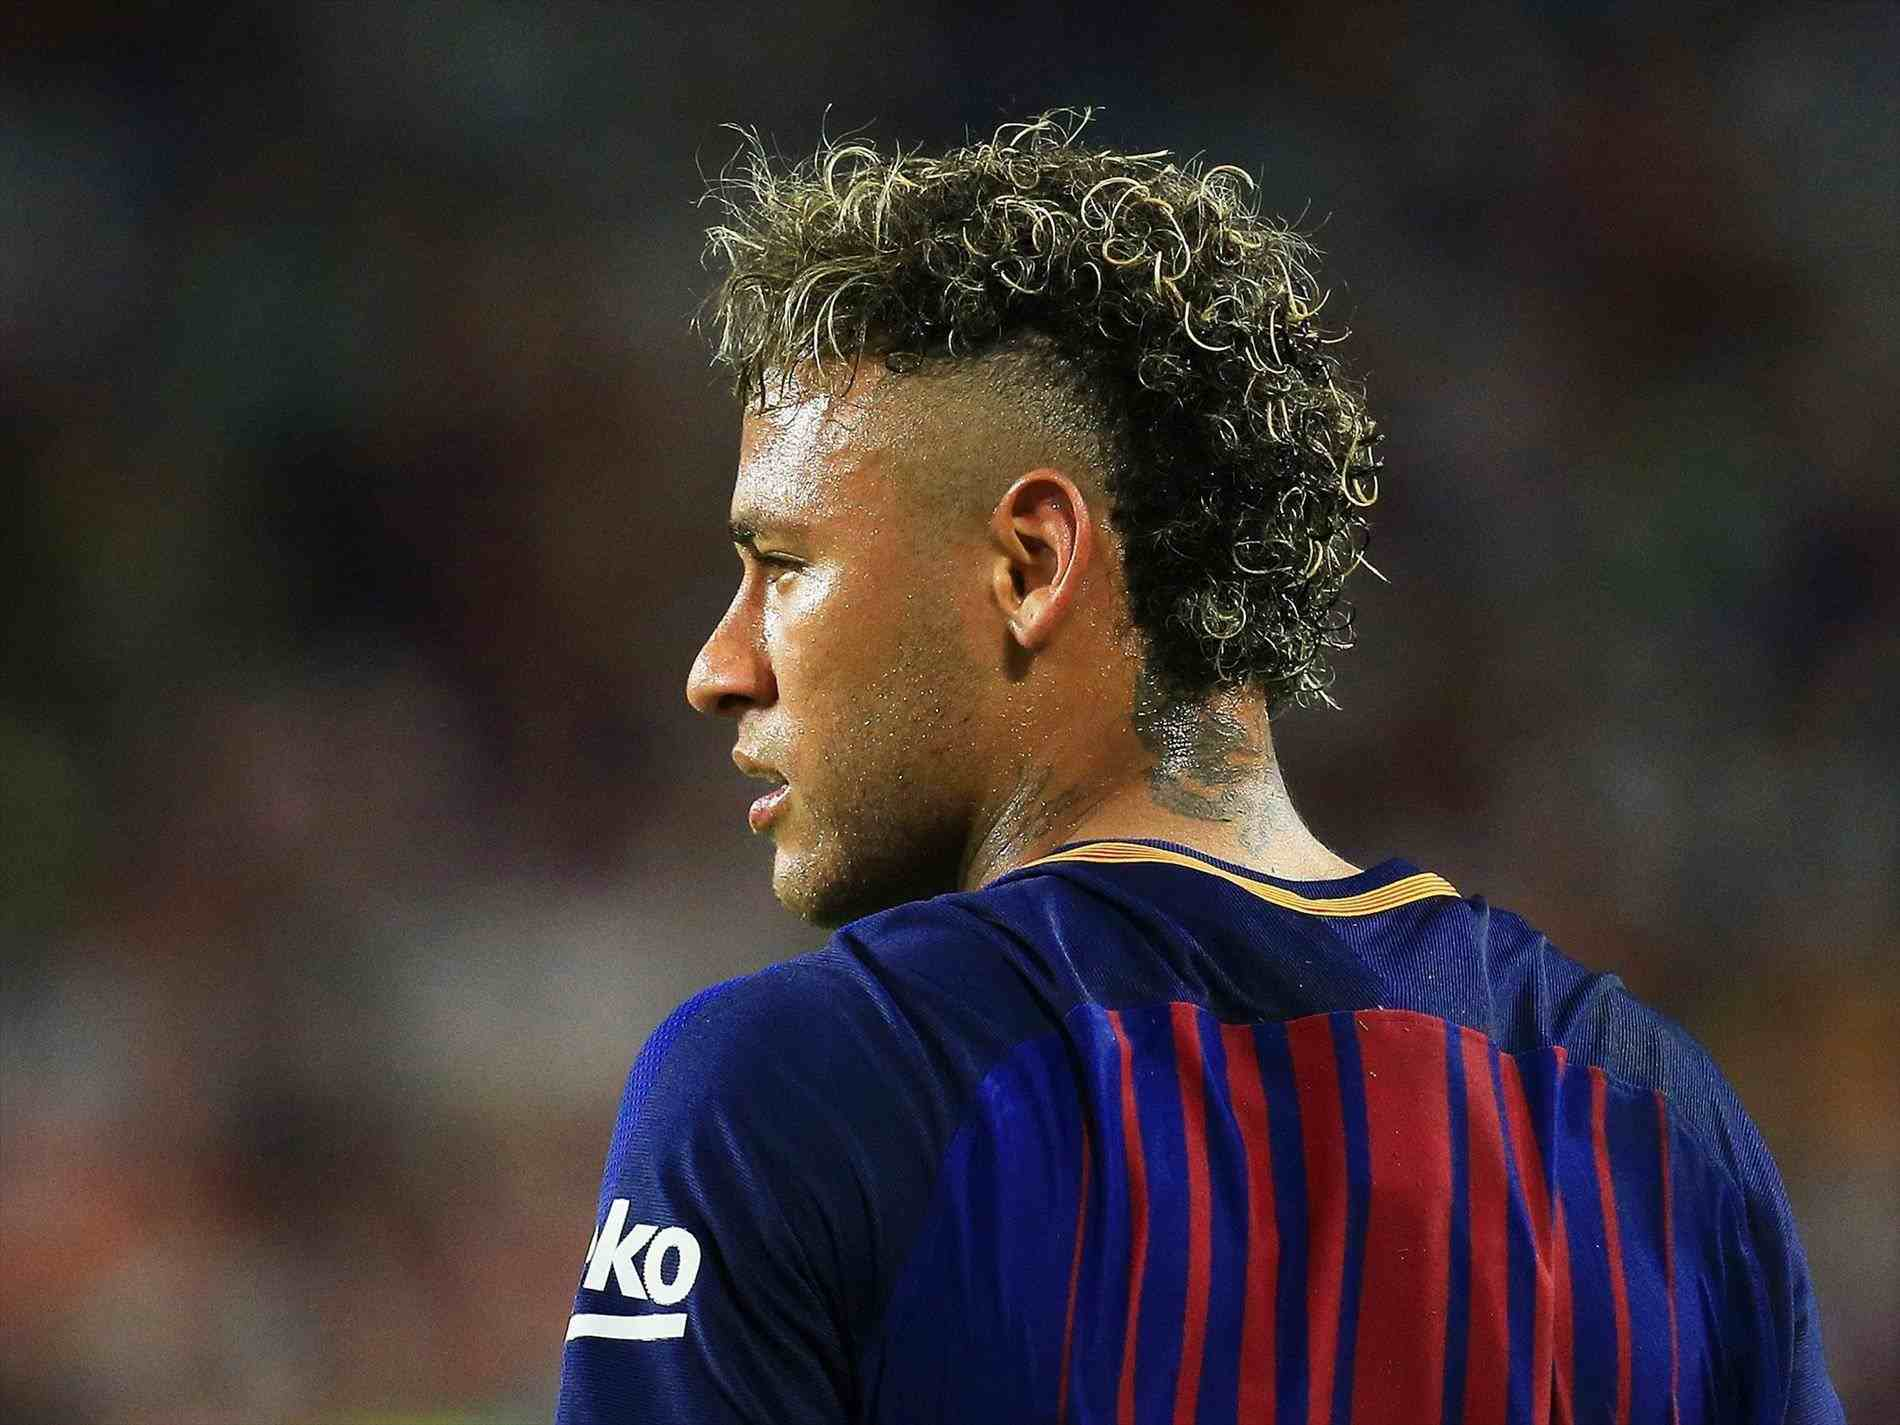 Neymar Hairstyle Wallpapers - Wallpaper Cave